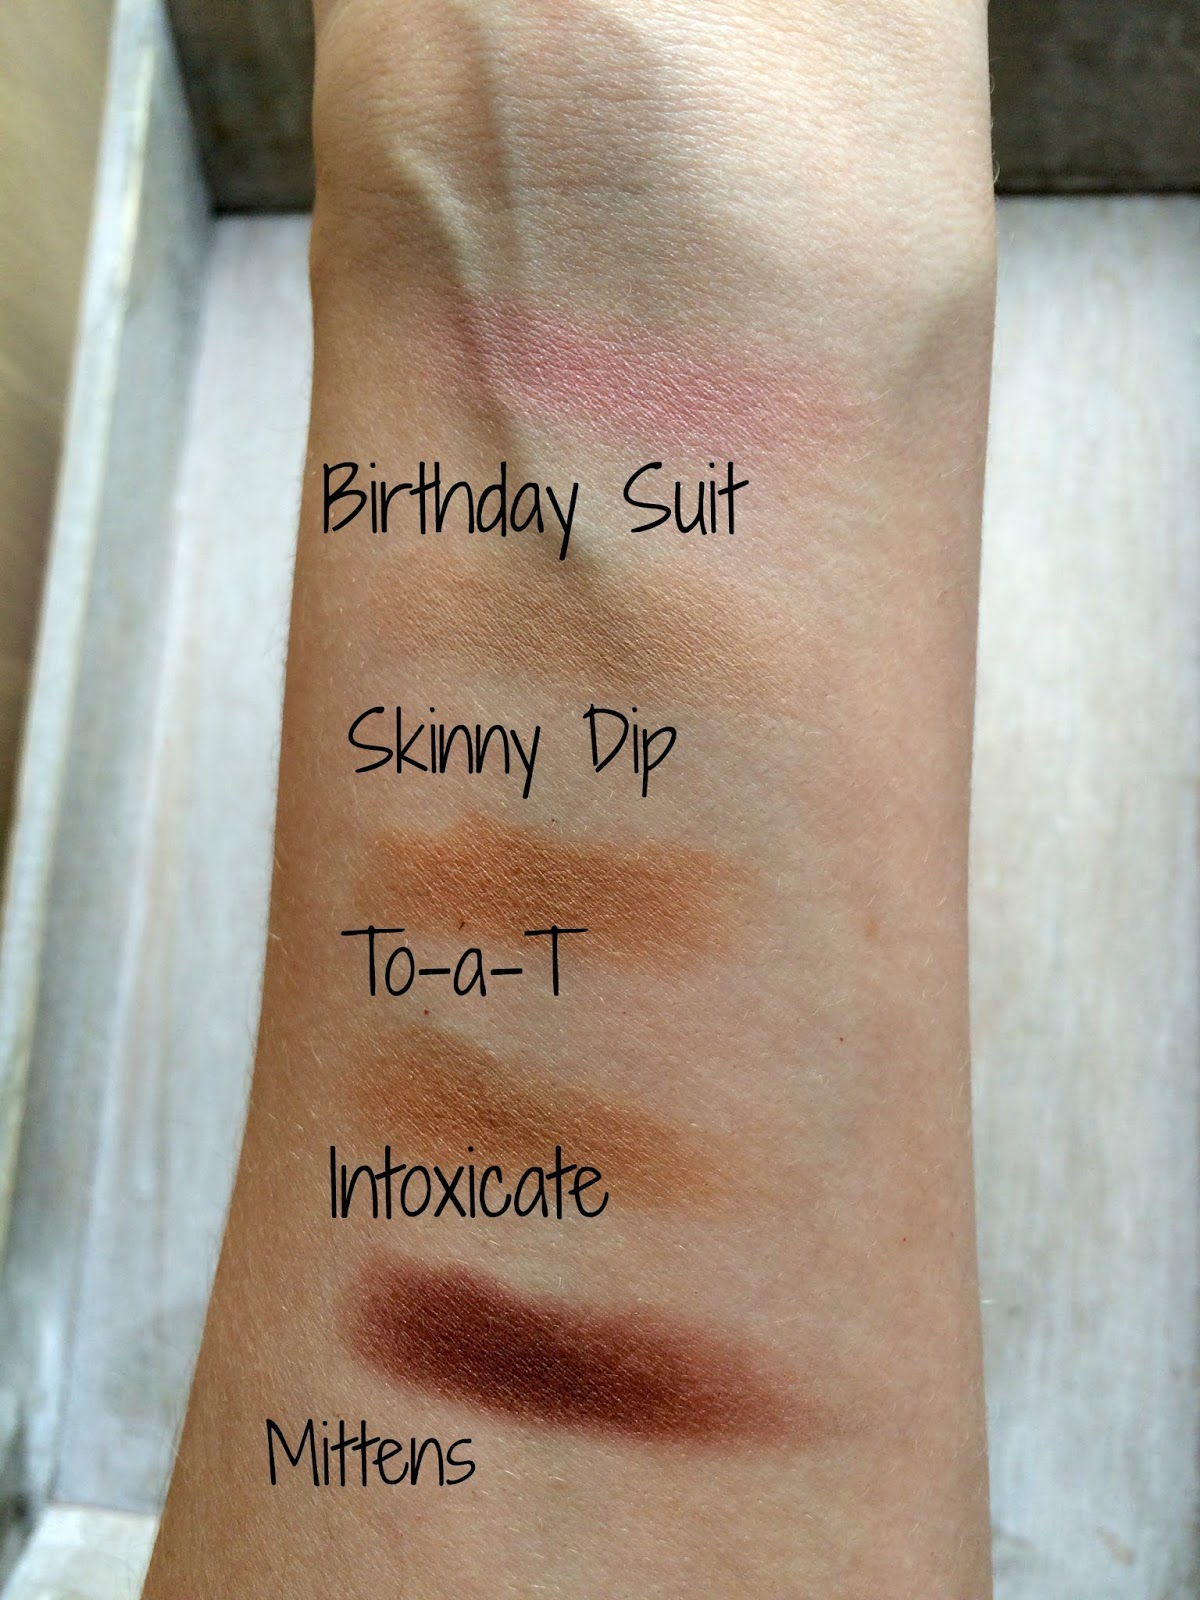 ColourPop swatches birthday suit skinny dip mittens to-a-t intoxicate